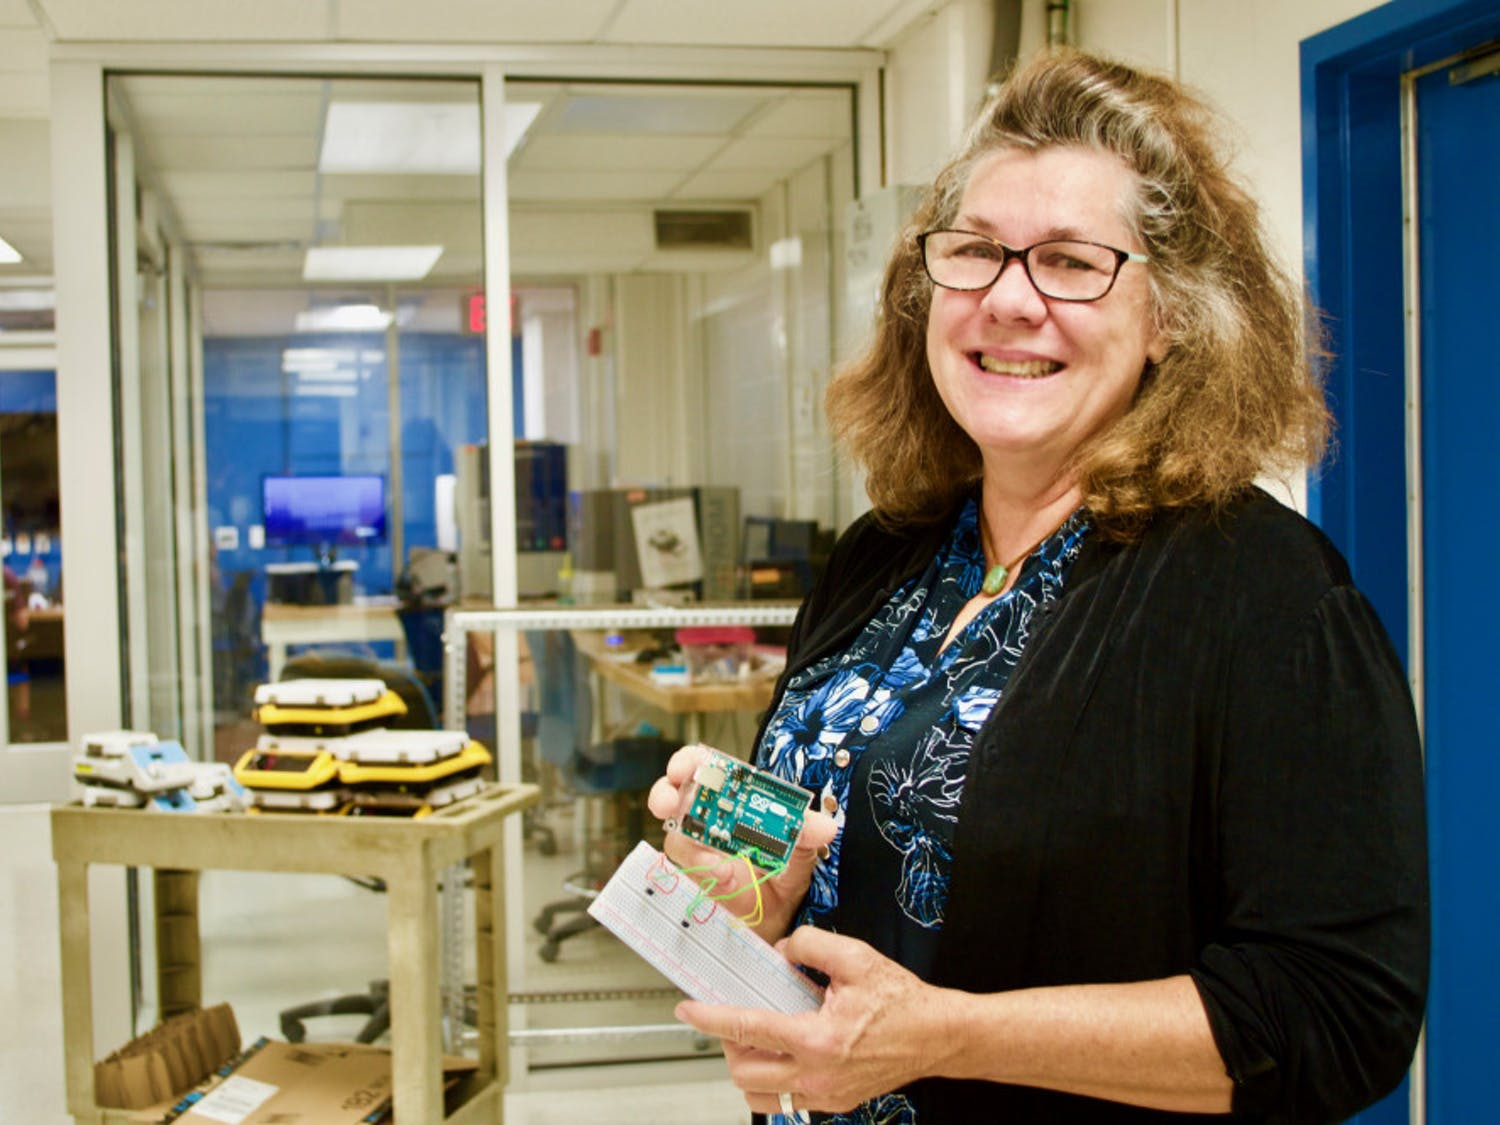 Nancy Ruzycki, a UF lecturer and the director of undergraduate laboratories at the Herbert Wertheim College of Engineering Department of Materials Science and Engineering, holds Arduinos, an type of open-source electronic, to create lab experiments involving data collection and analysis. Courtesy to The Alligator.